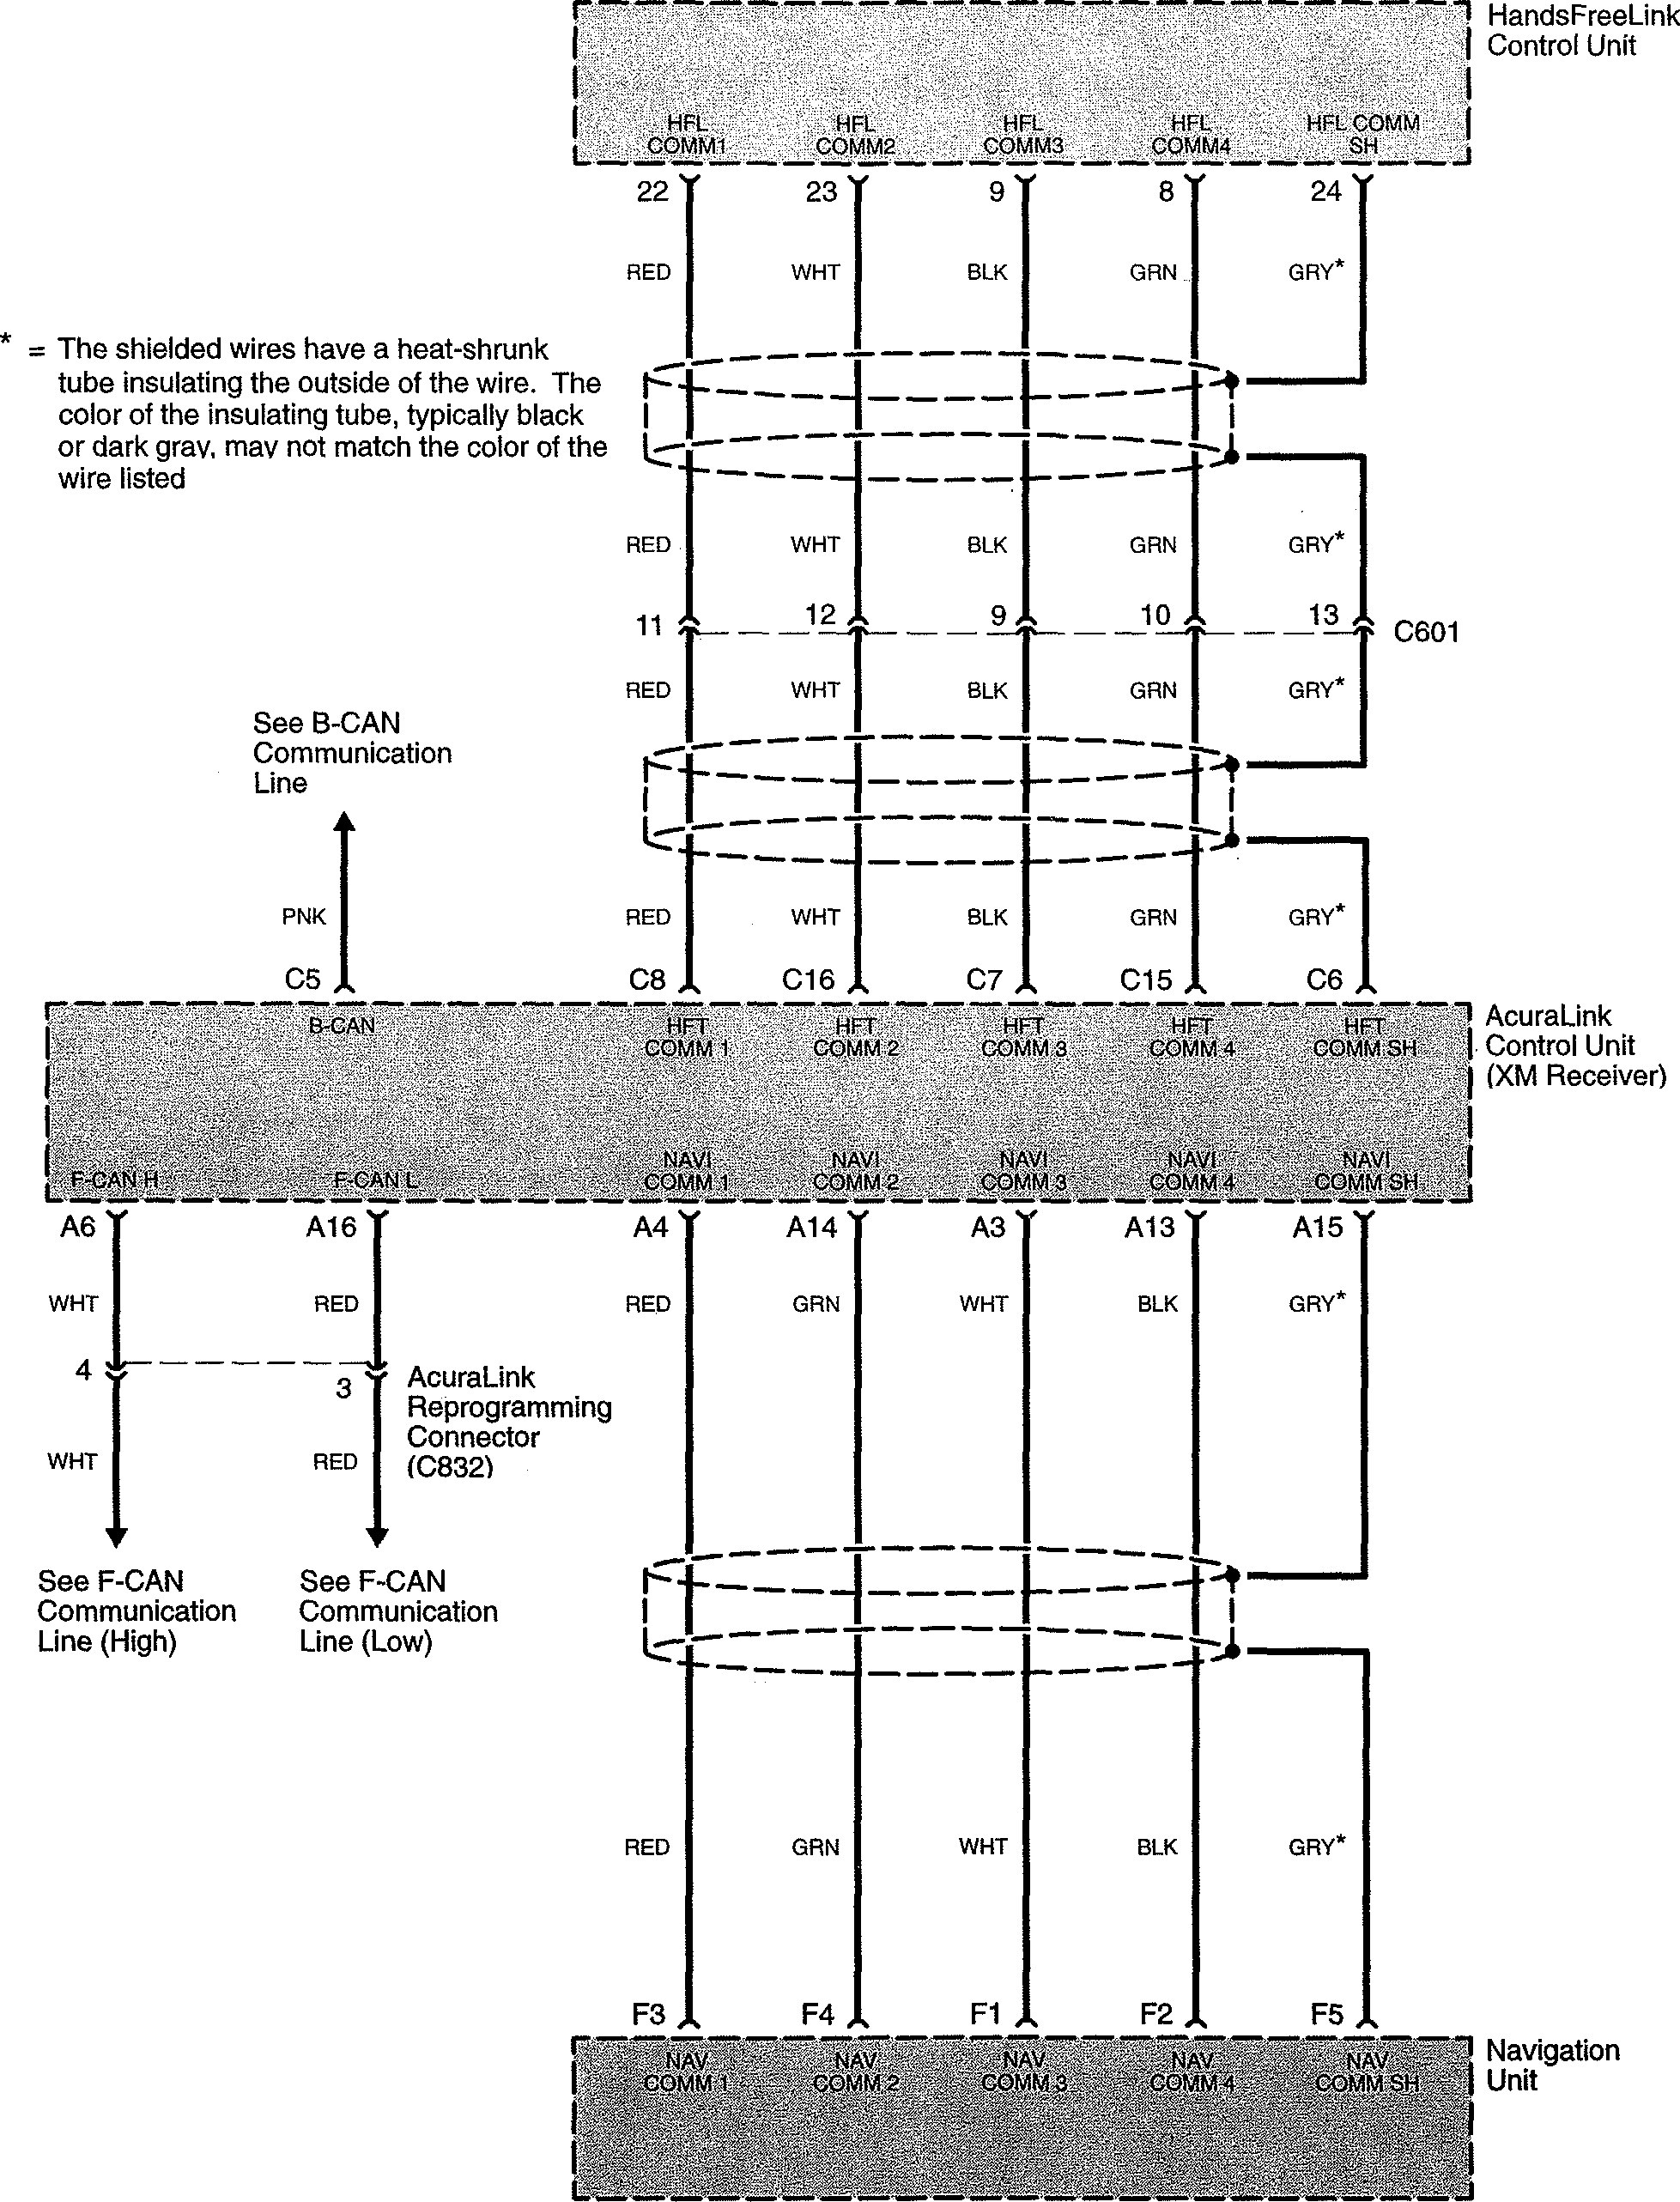 acura tl - wiring diagram - hands free link system (part 6)